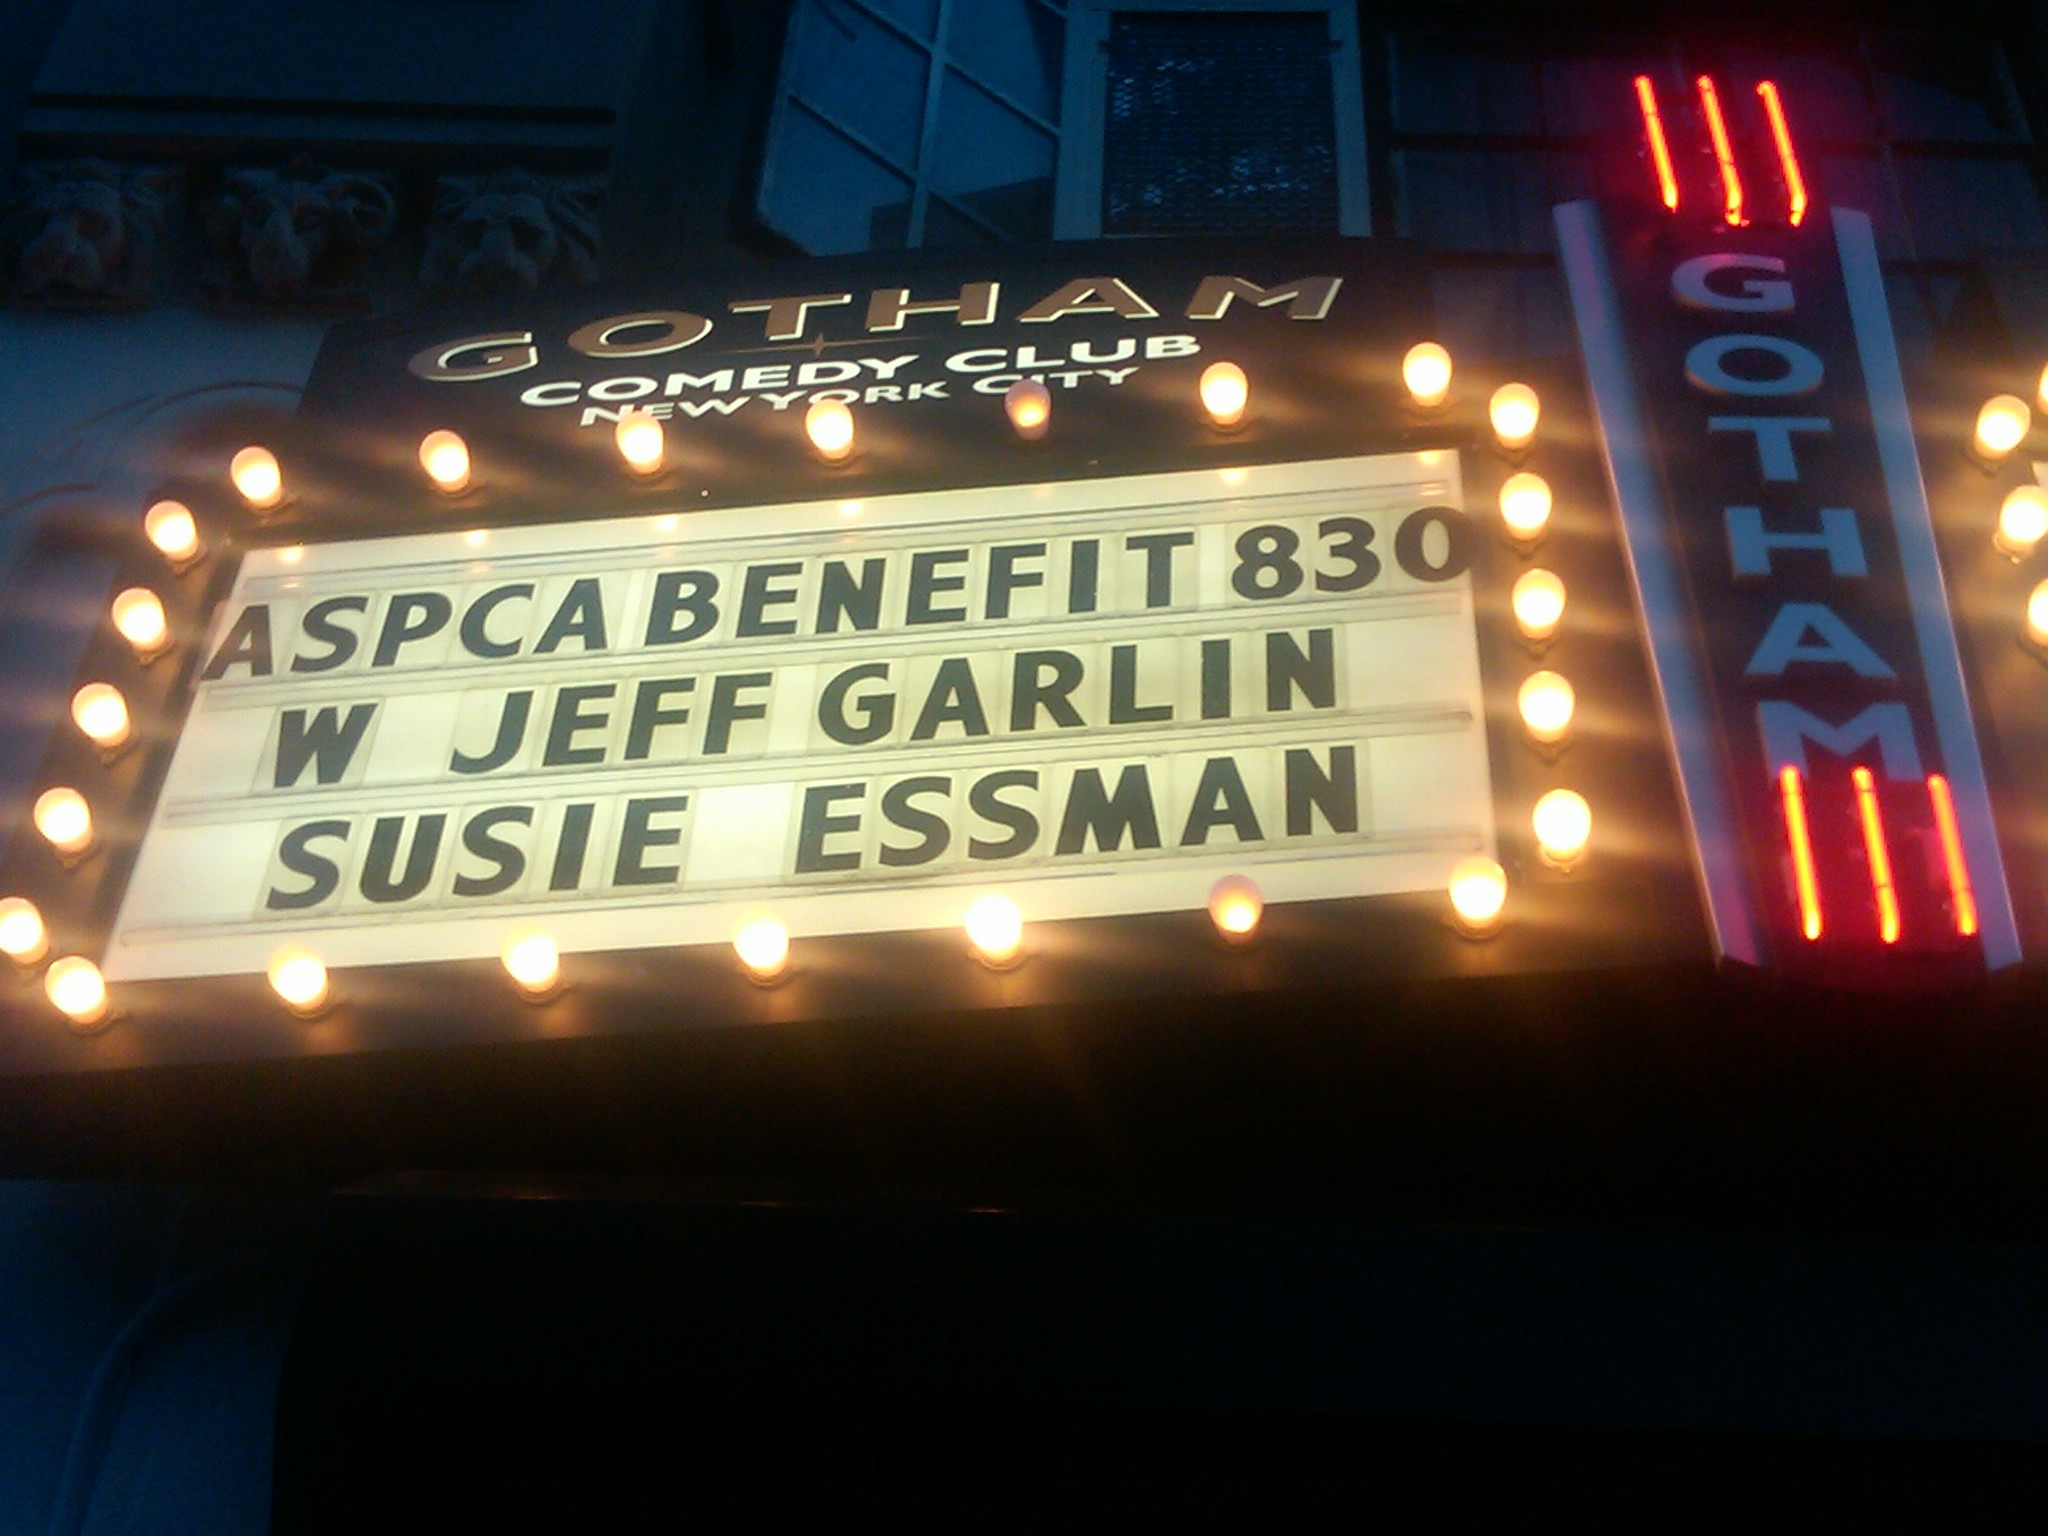 Jeff Garlin and Susie Essman ASPCA Benefit New York City